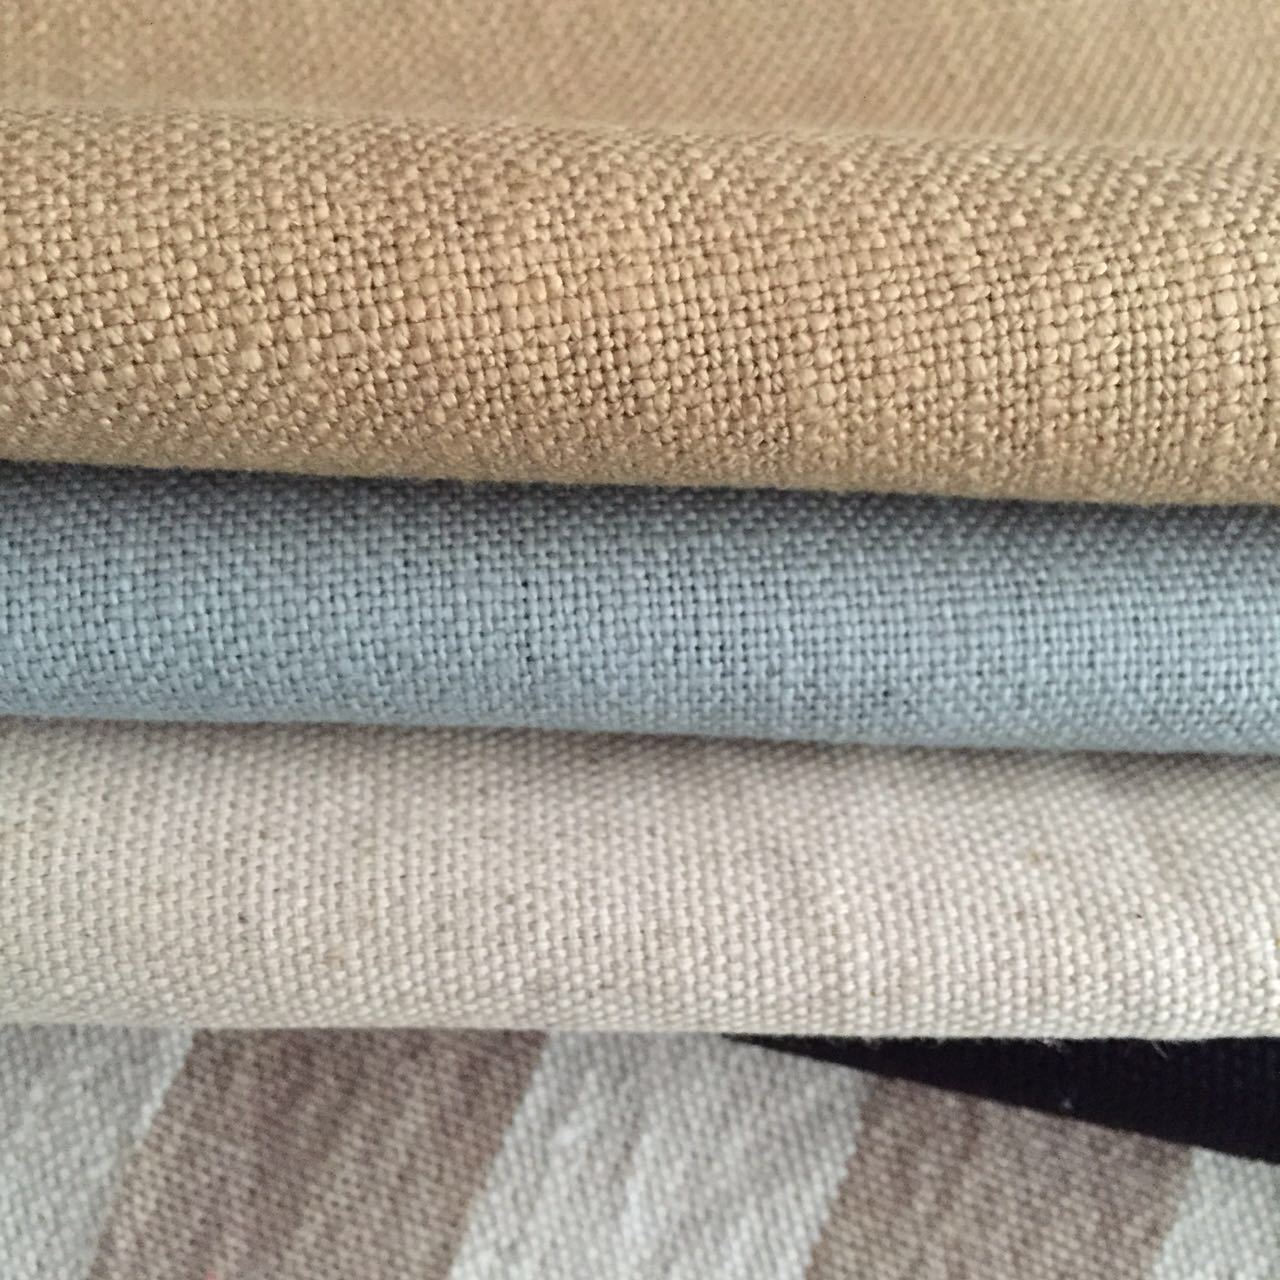 15 high quality general linen cotton, linen, blended, interwoven fabric, ramie cotton sofa cloth, sp